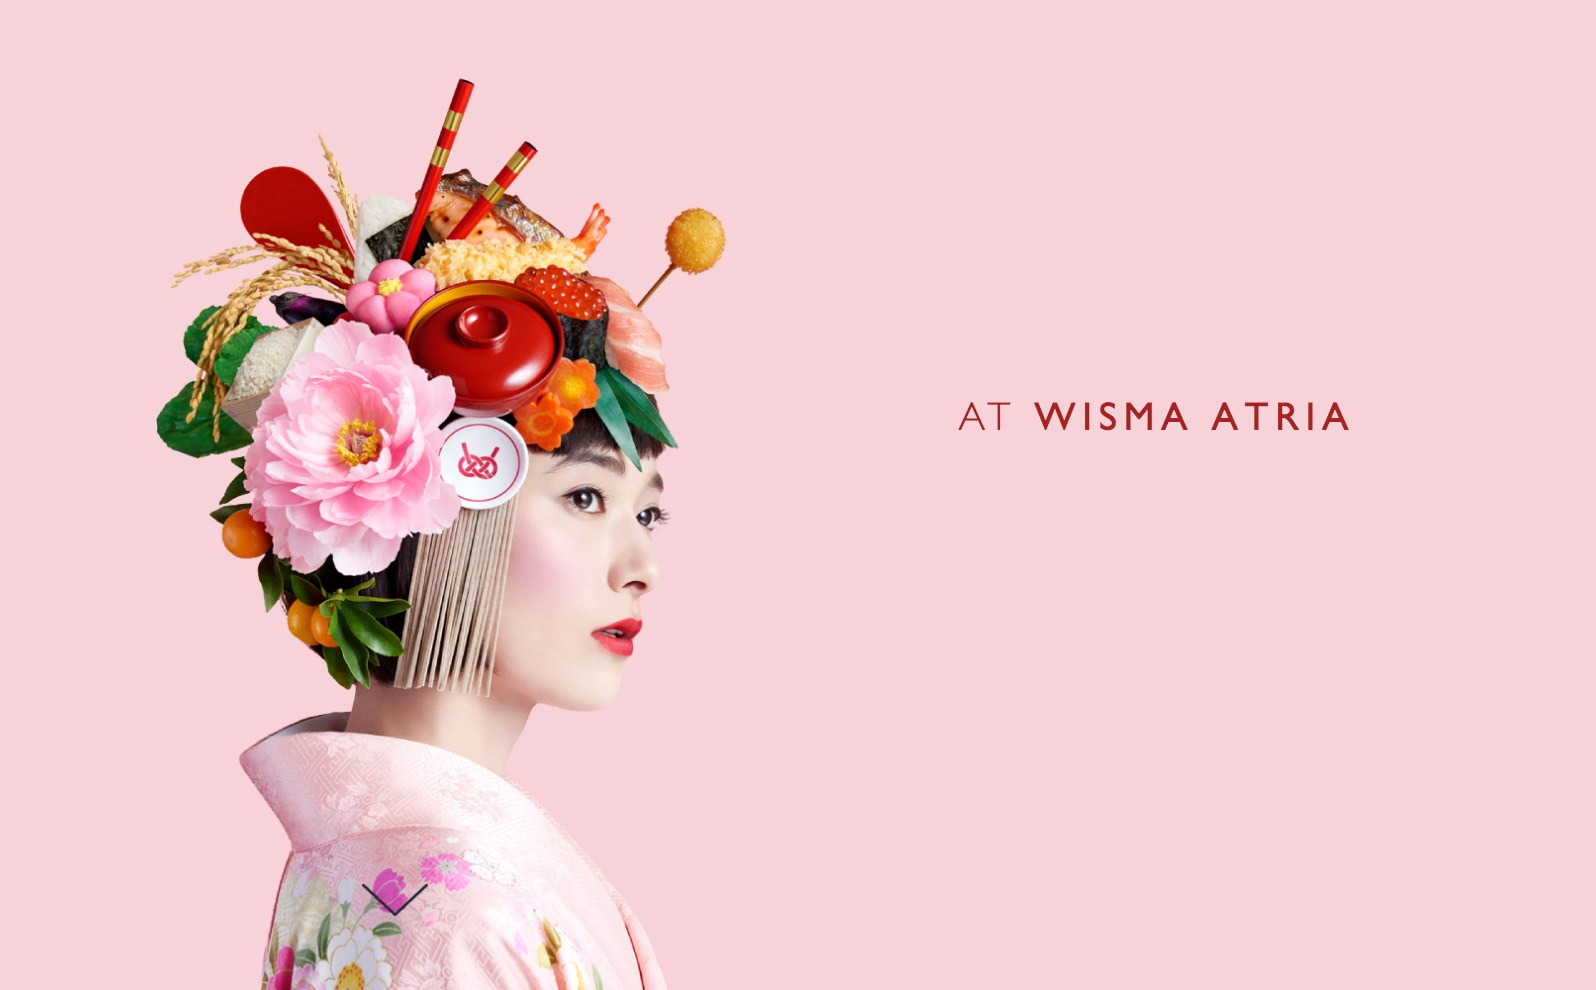 Japanese Food Town Now At Wisma Atria - AspirantSG